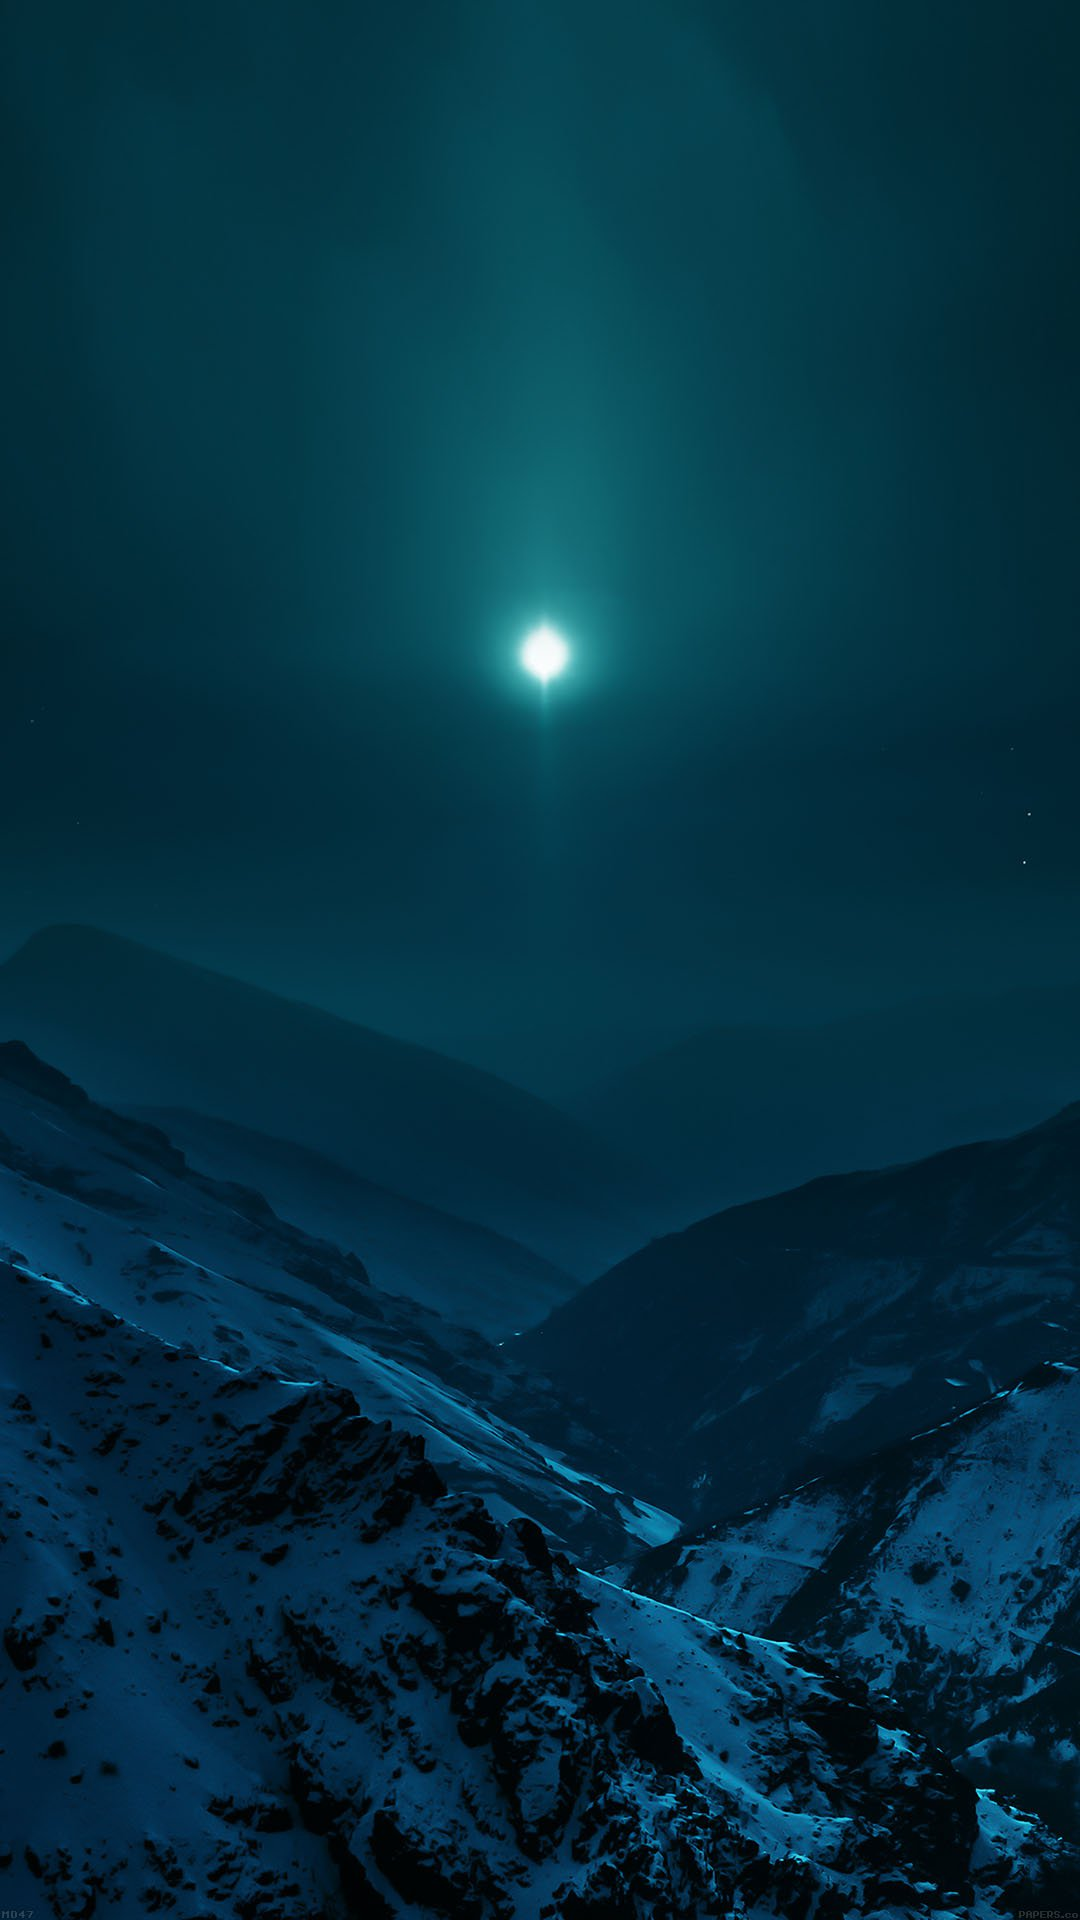 Wallpaper Nature Earth Asleep Mountain Night Android wallpaper